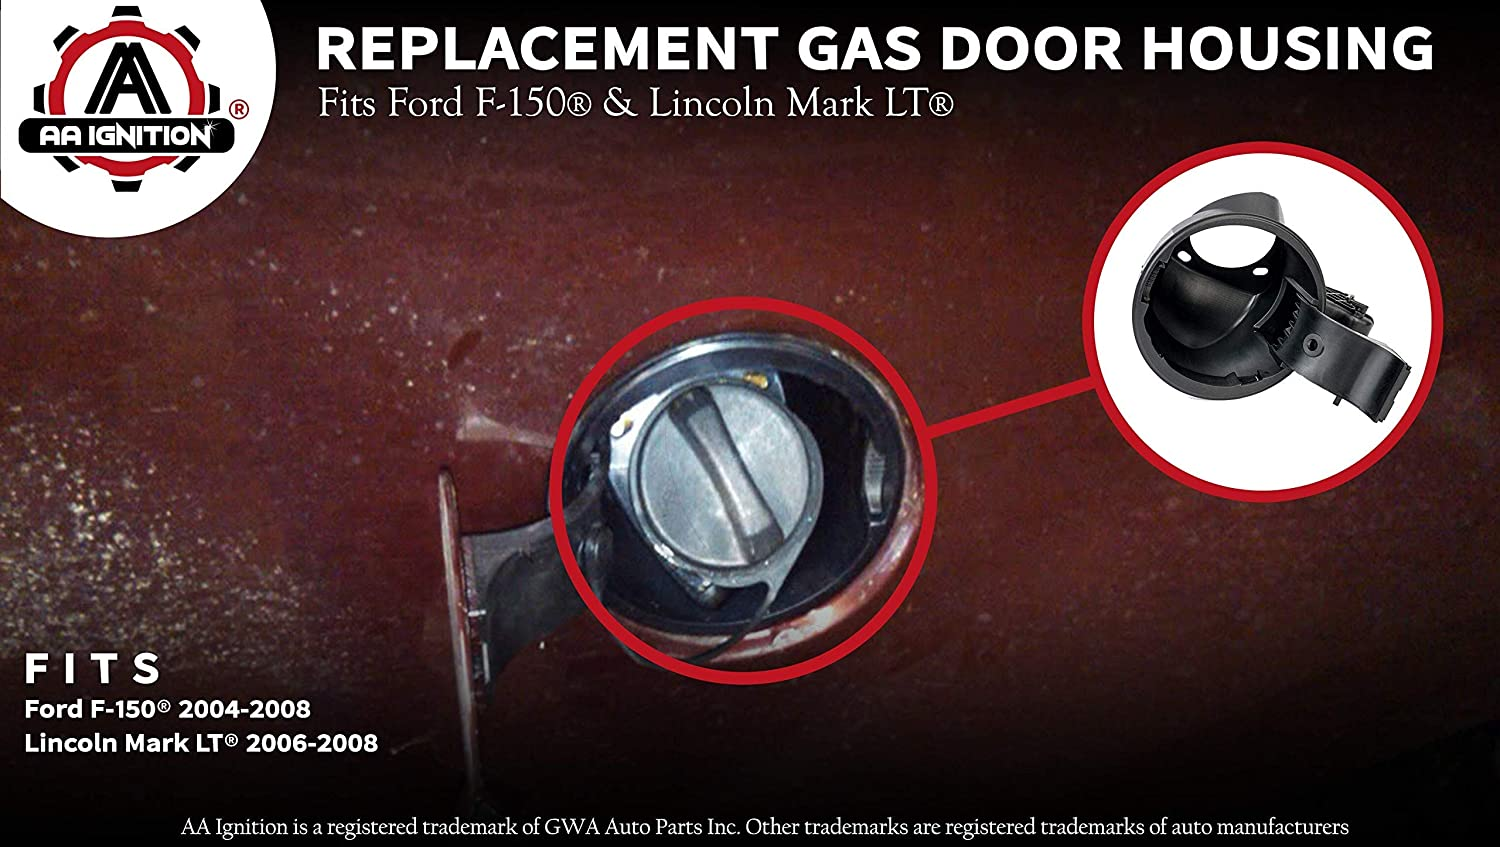 Fuel Filler Door Housing Pocket Assembly Gas Tank Cap Door Hinge Fits Ford F150 and Lincoln Mark LT Model Years 2004-2008 924-801 924801 Renewed Replaces# 4L3Z-9927936-BA 4L3Z9927936BA